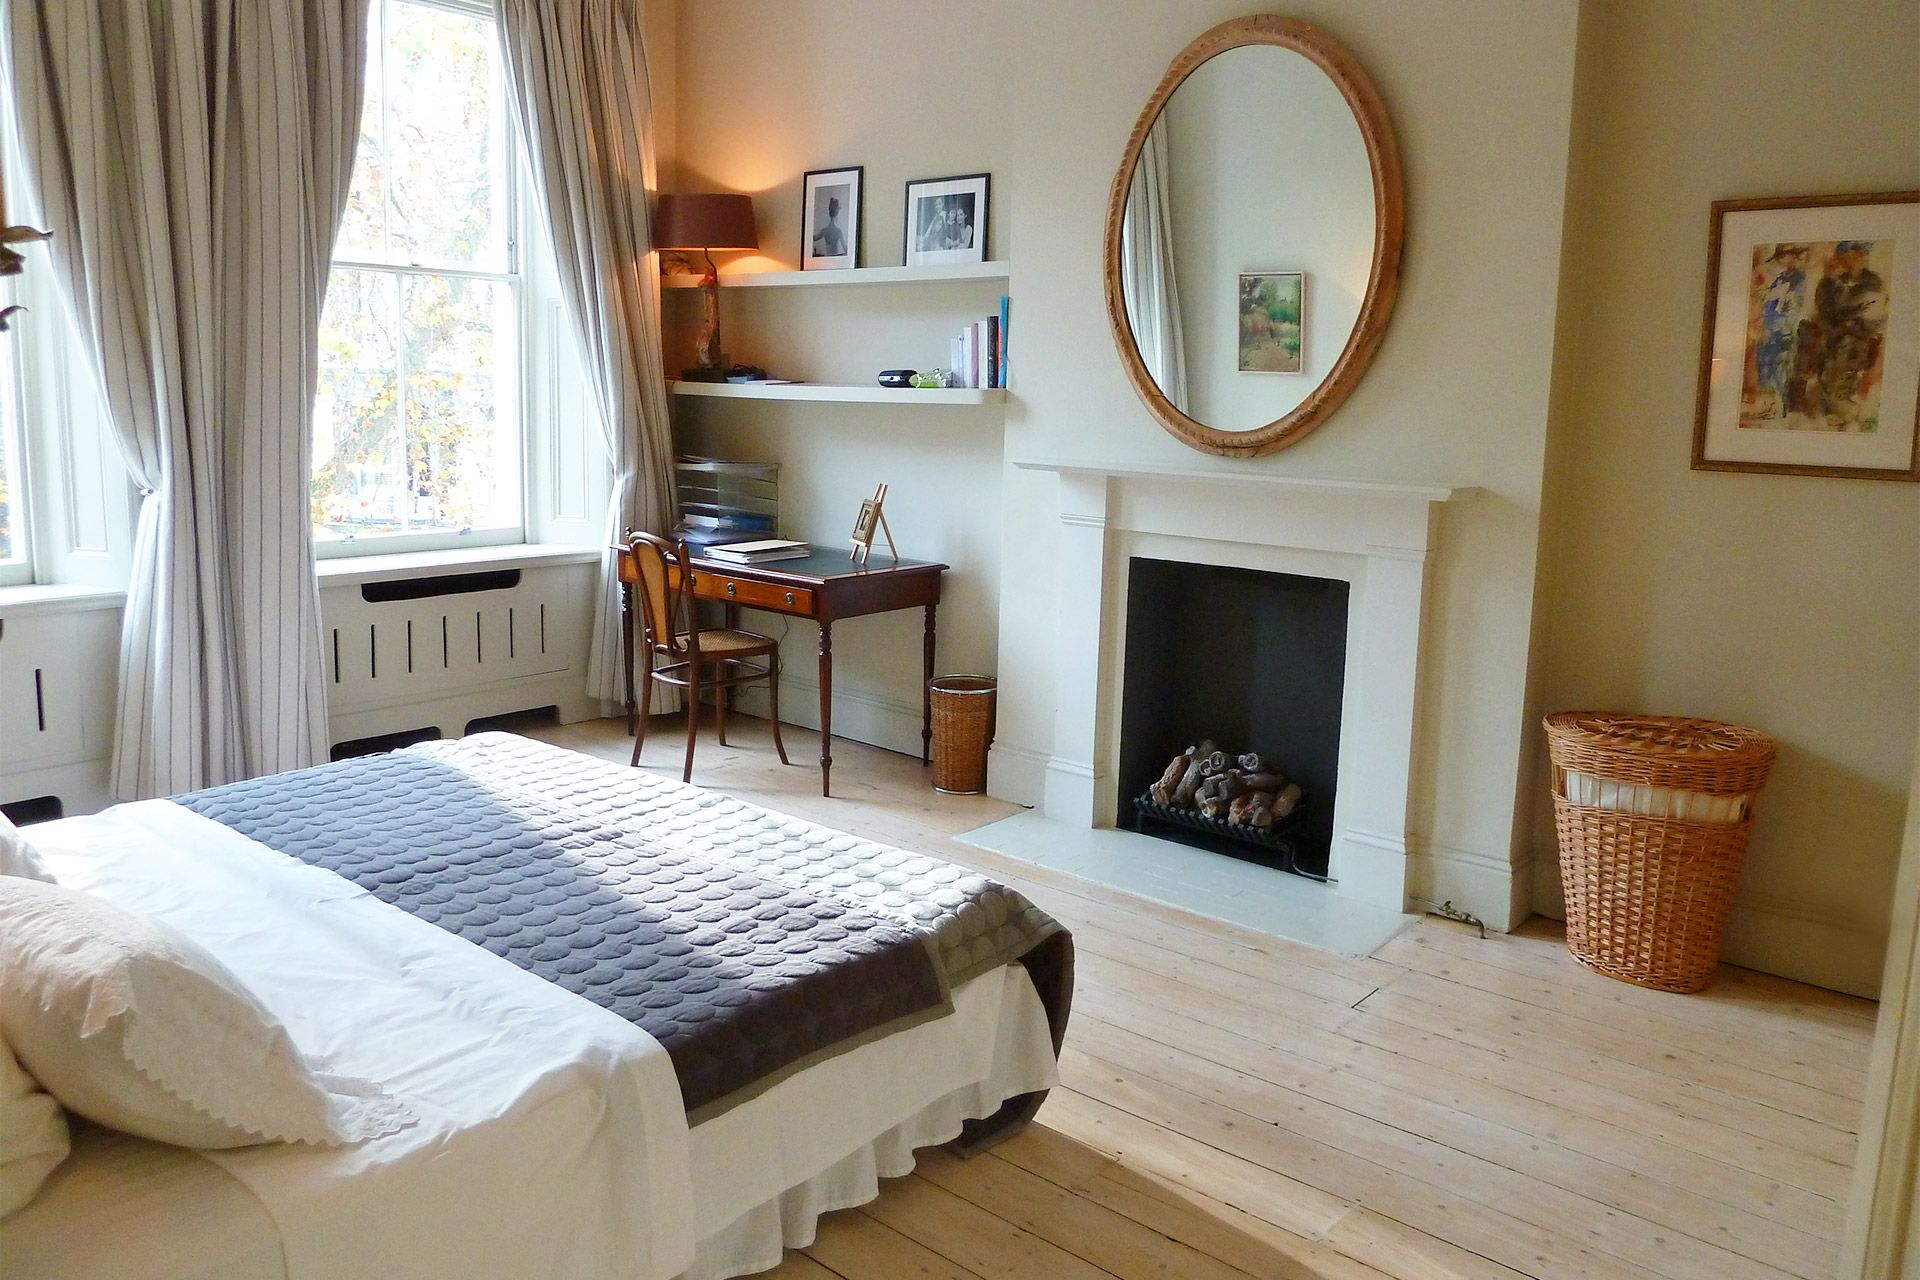 Beautiful English bedroom antiques in The Gloucester vacation rental offered by London Perfect